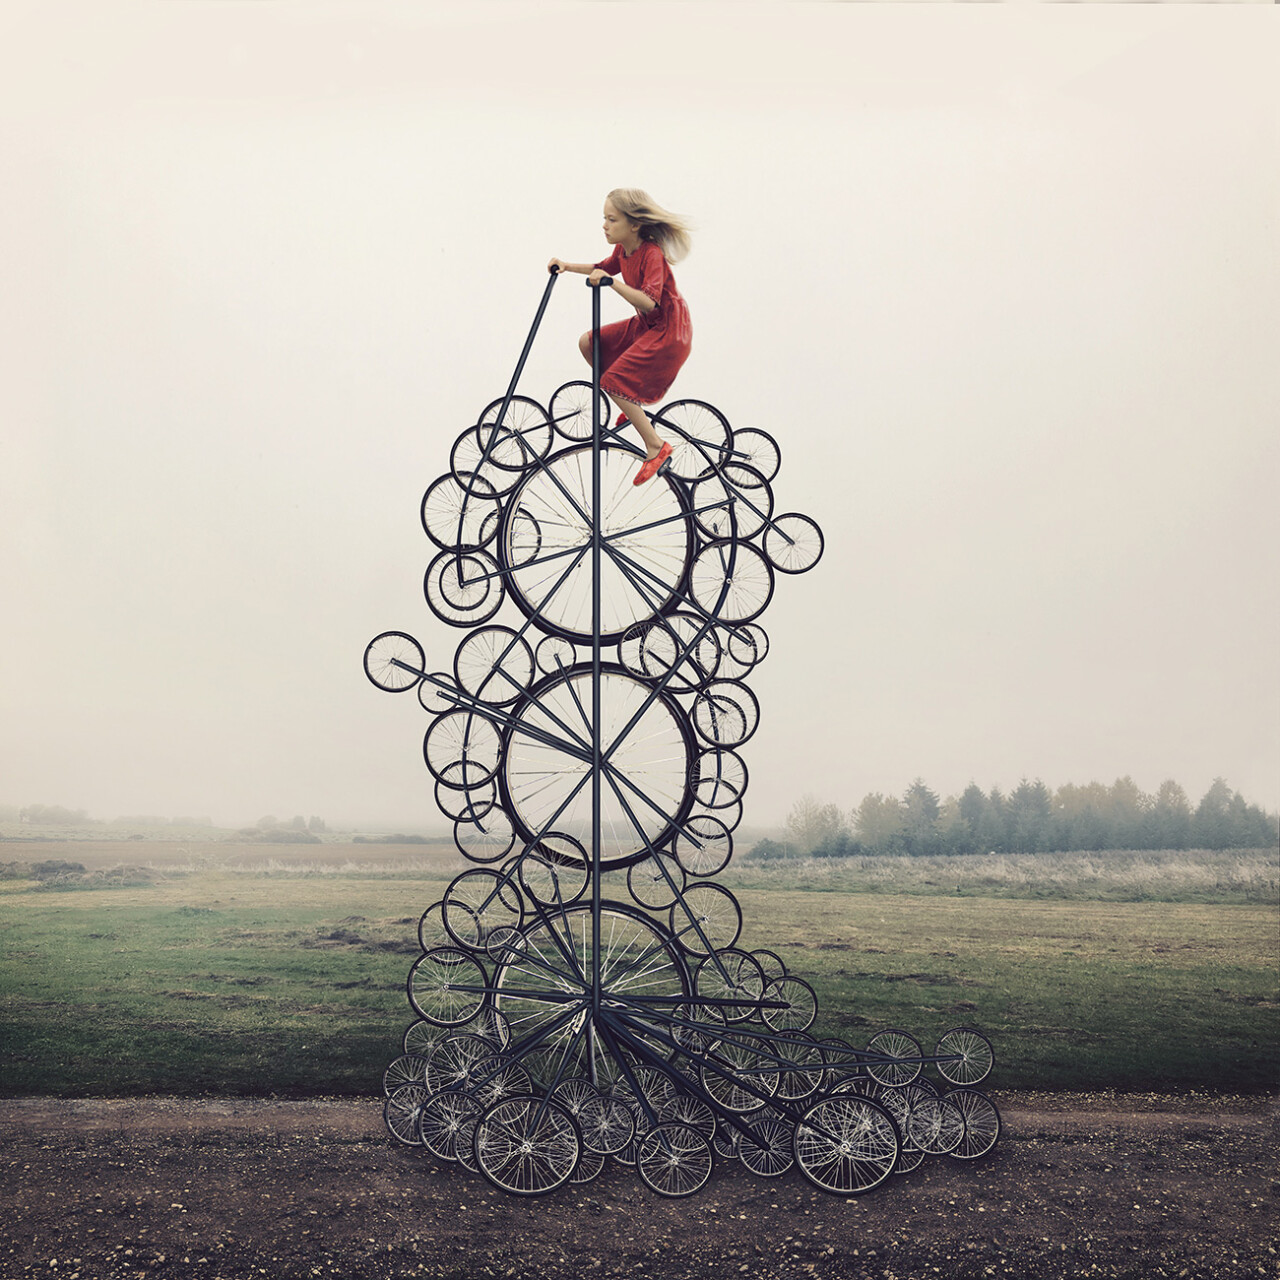 Sensual Female Portraits by KYLLI SPARRE